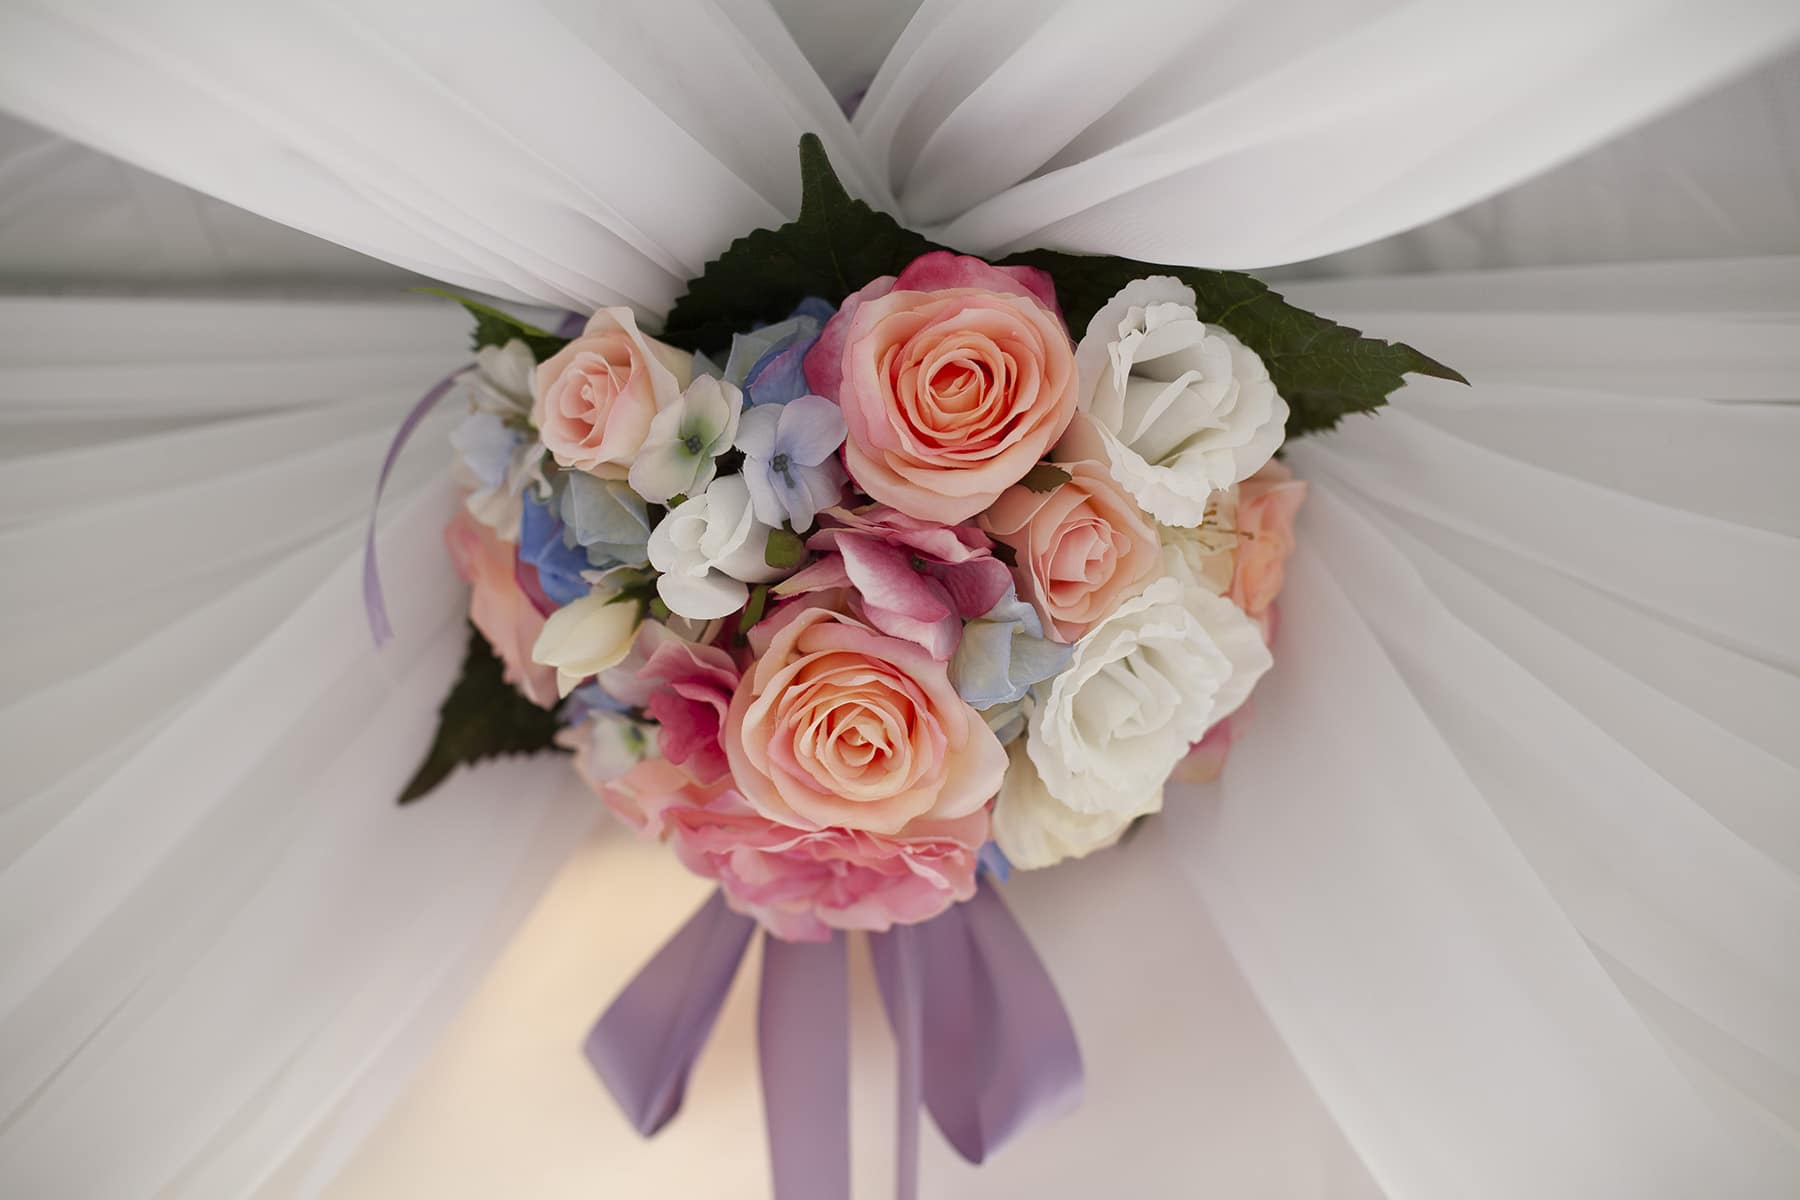 A large dome arrangement made of pastel roses and filler flowers.